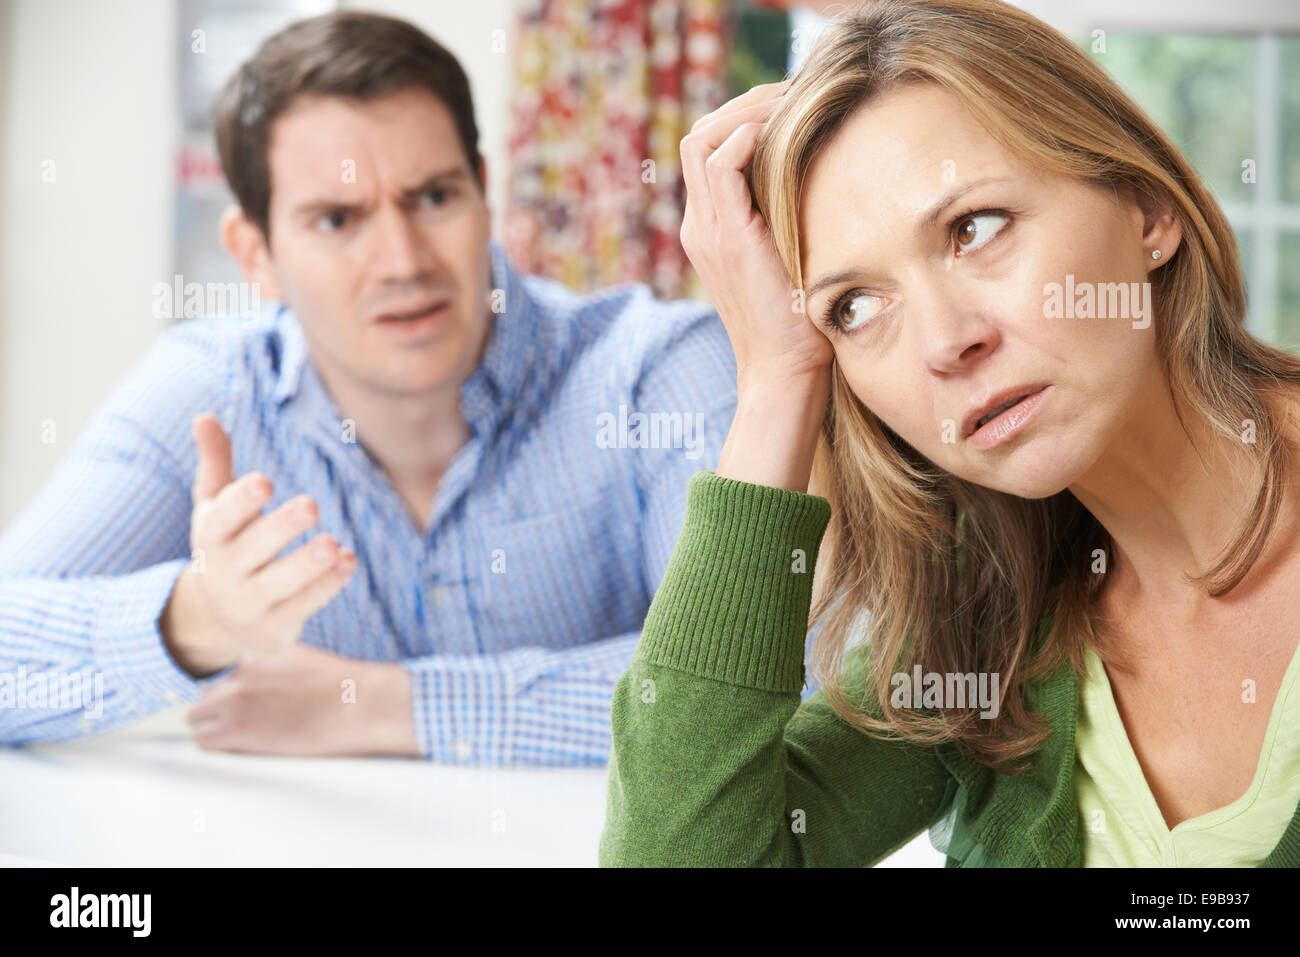 Couple Having Arguement At Home Stock Photo